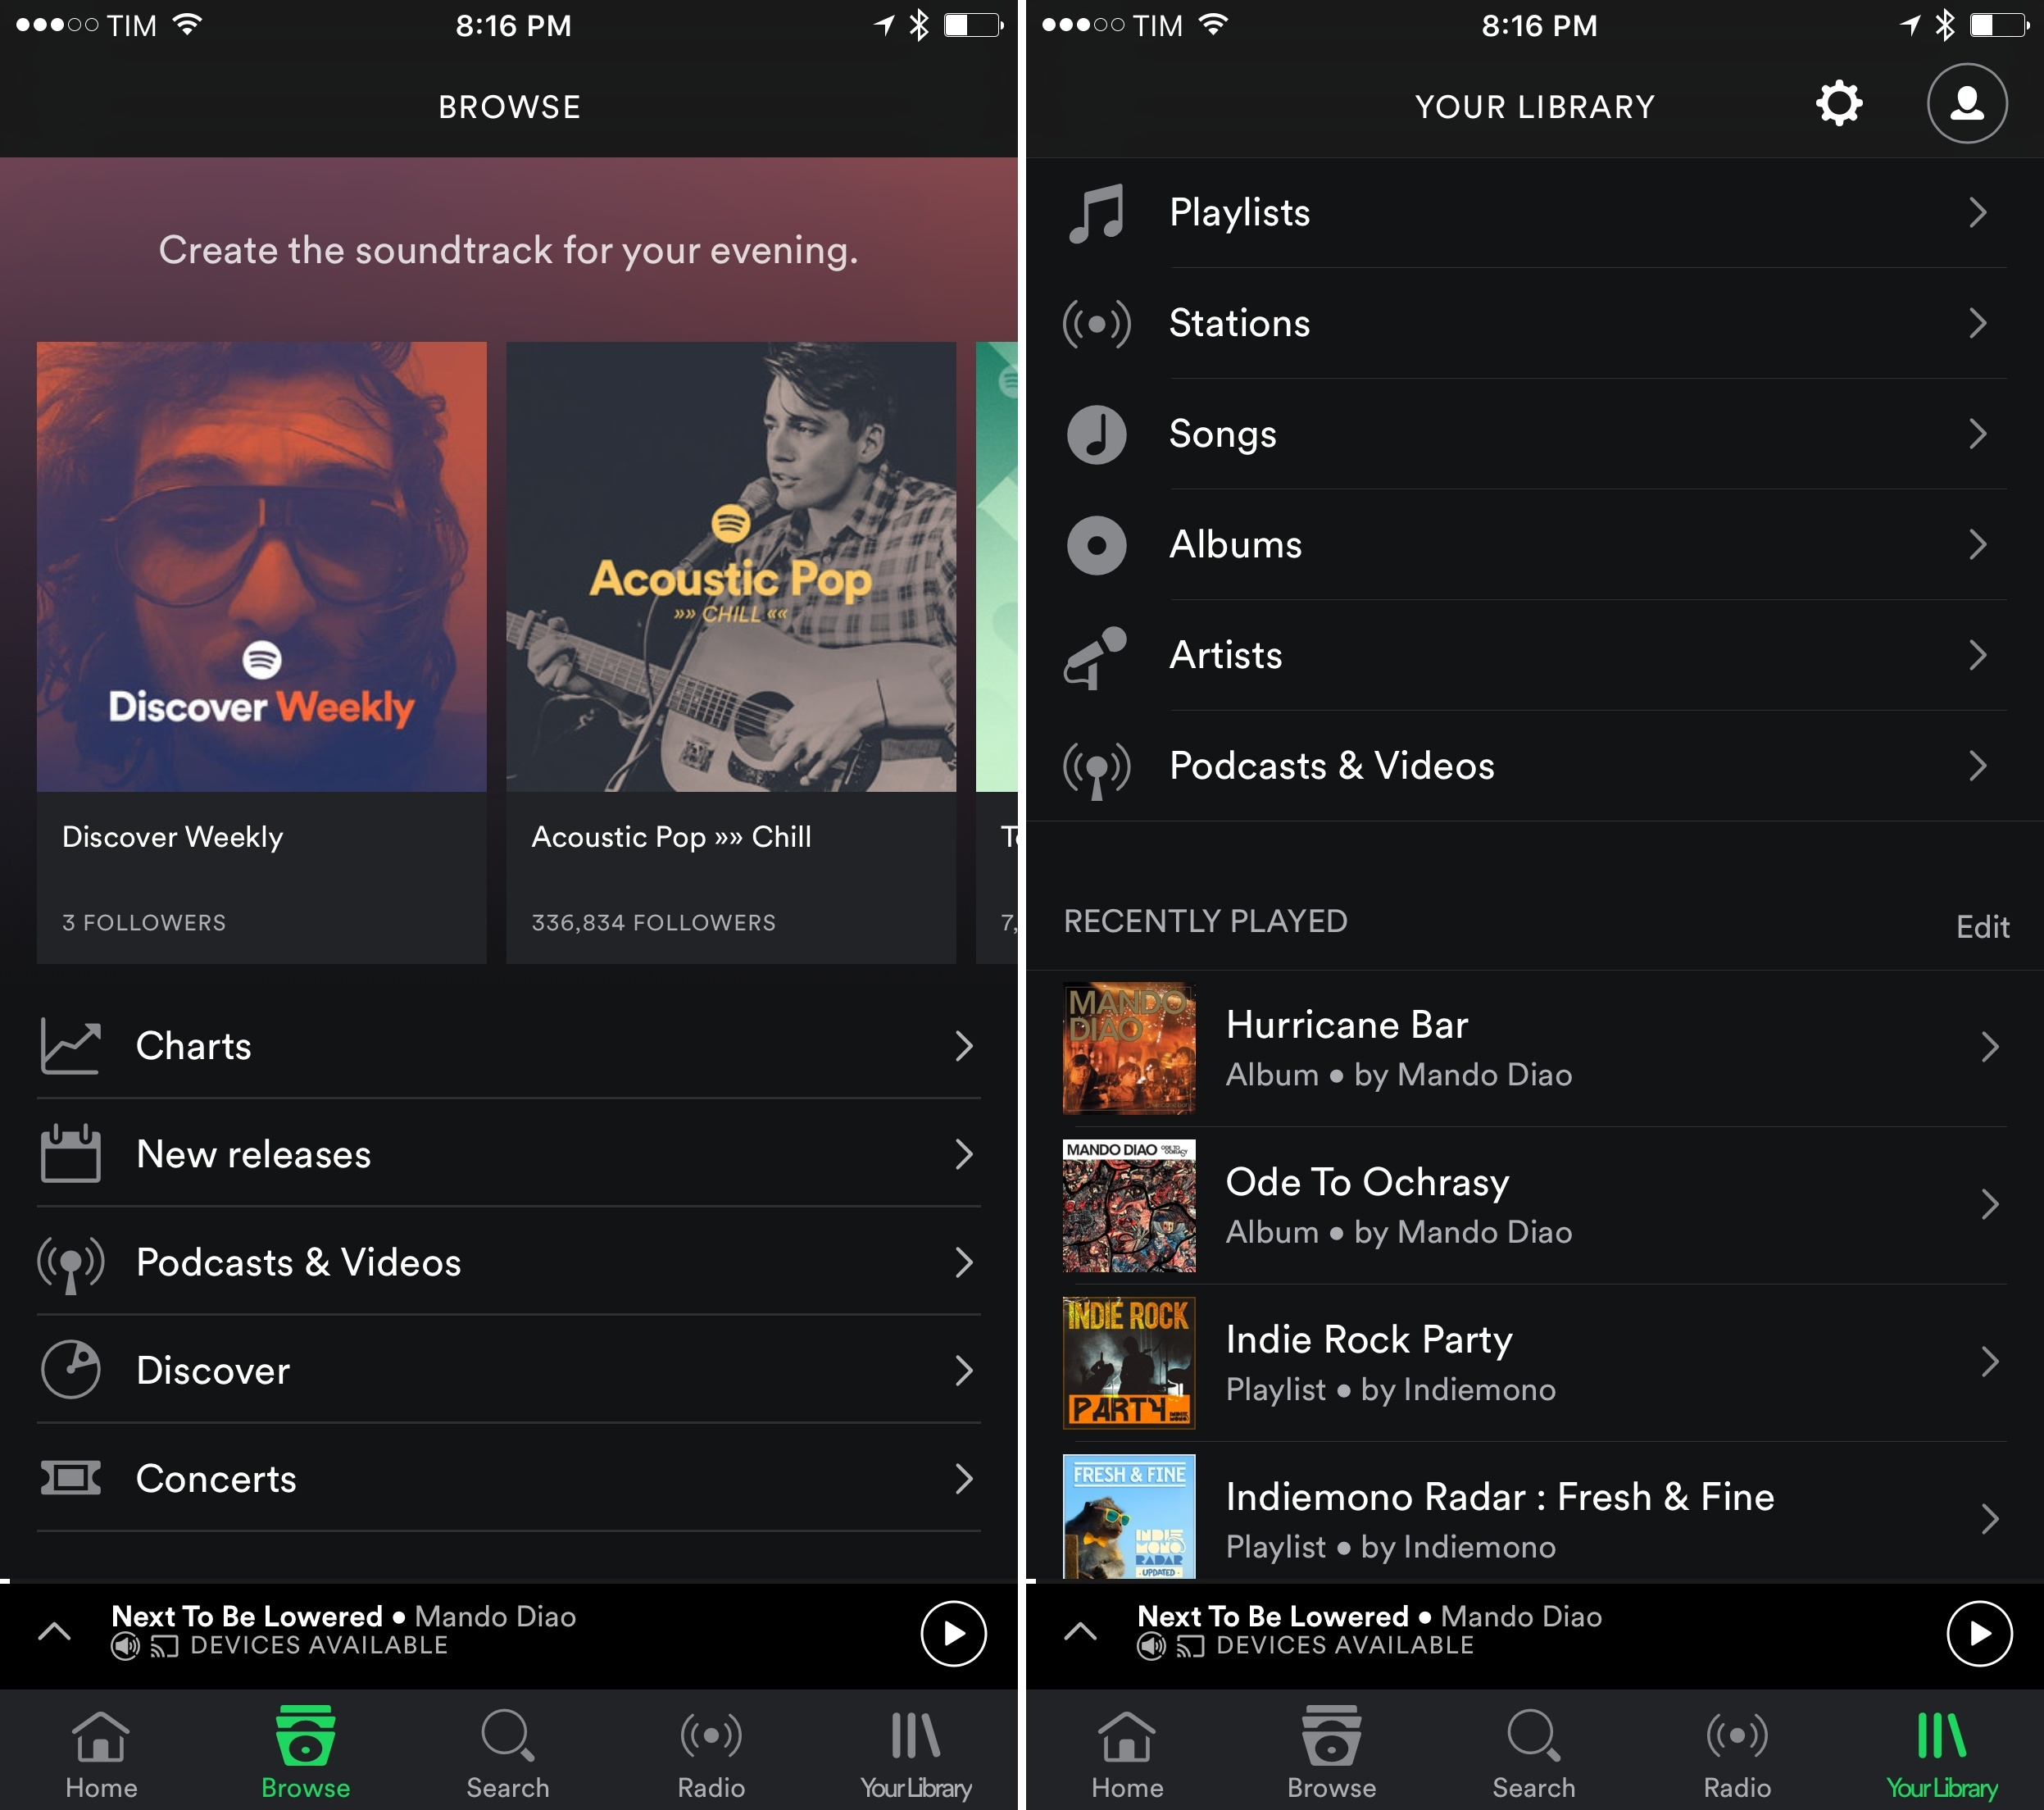 Spotify Brings Back The Tab Bar On IOS